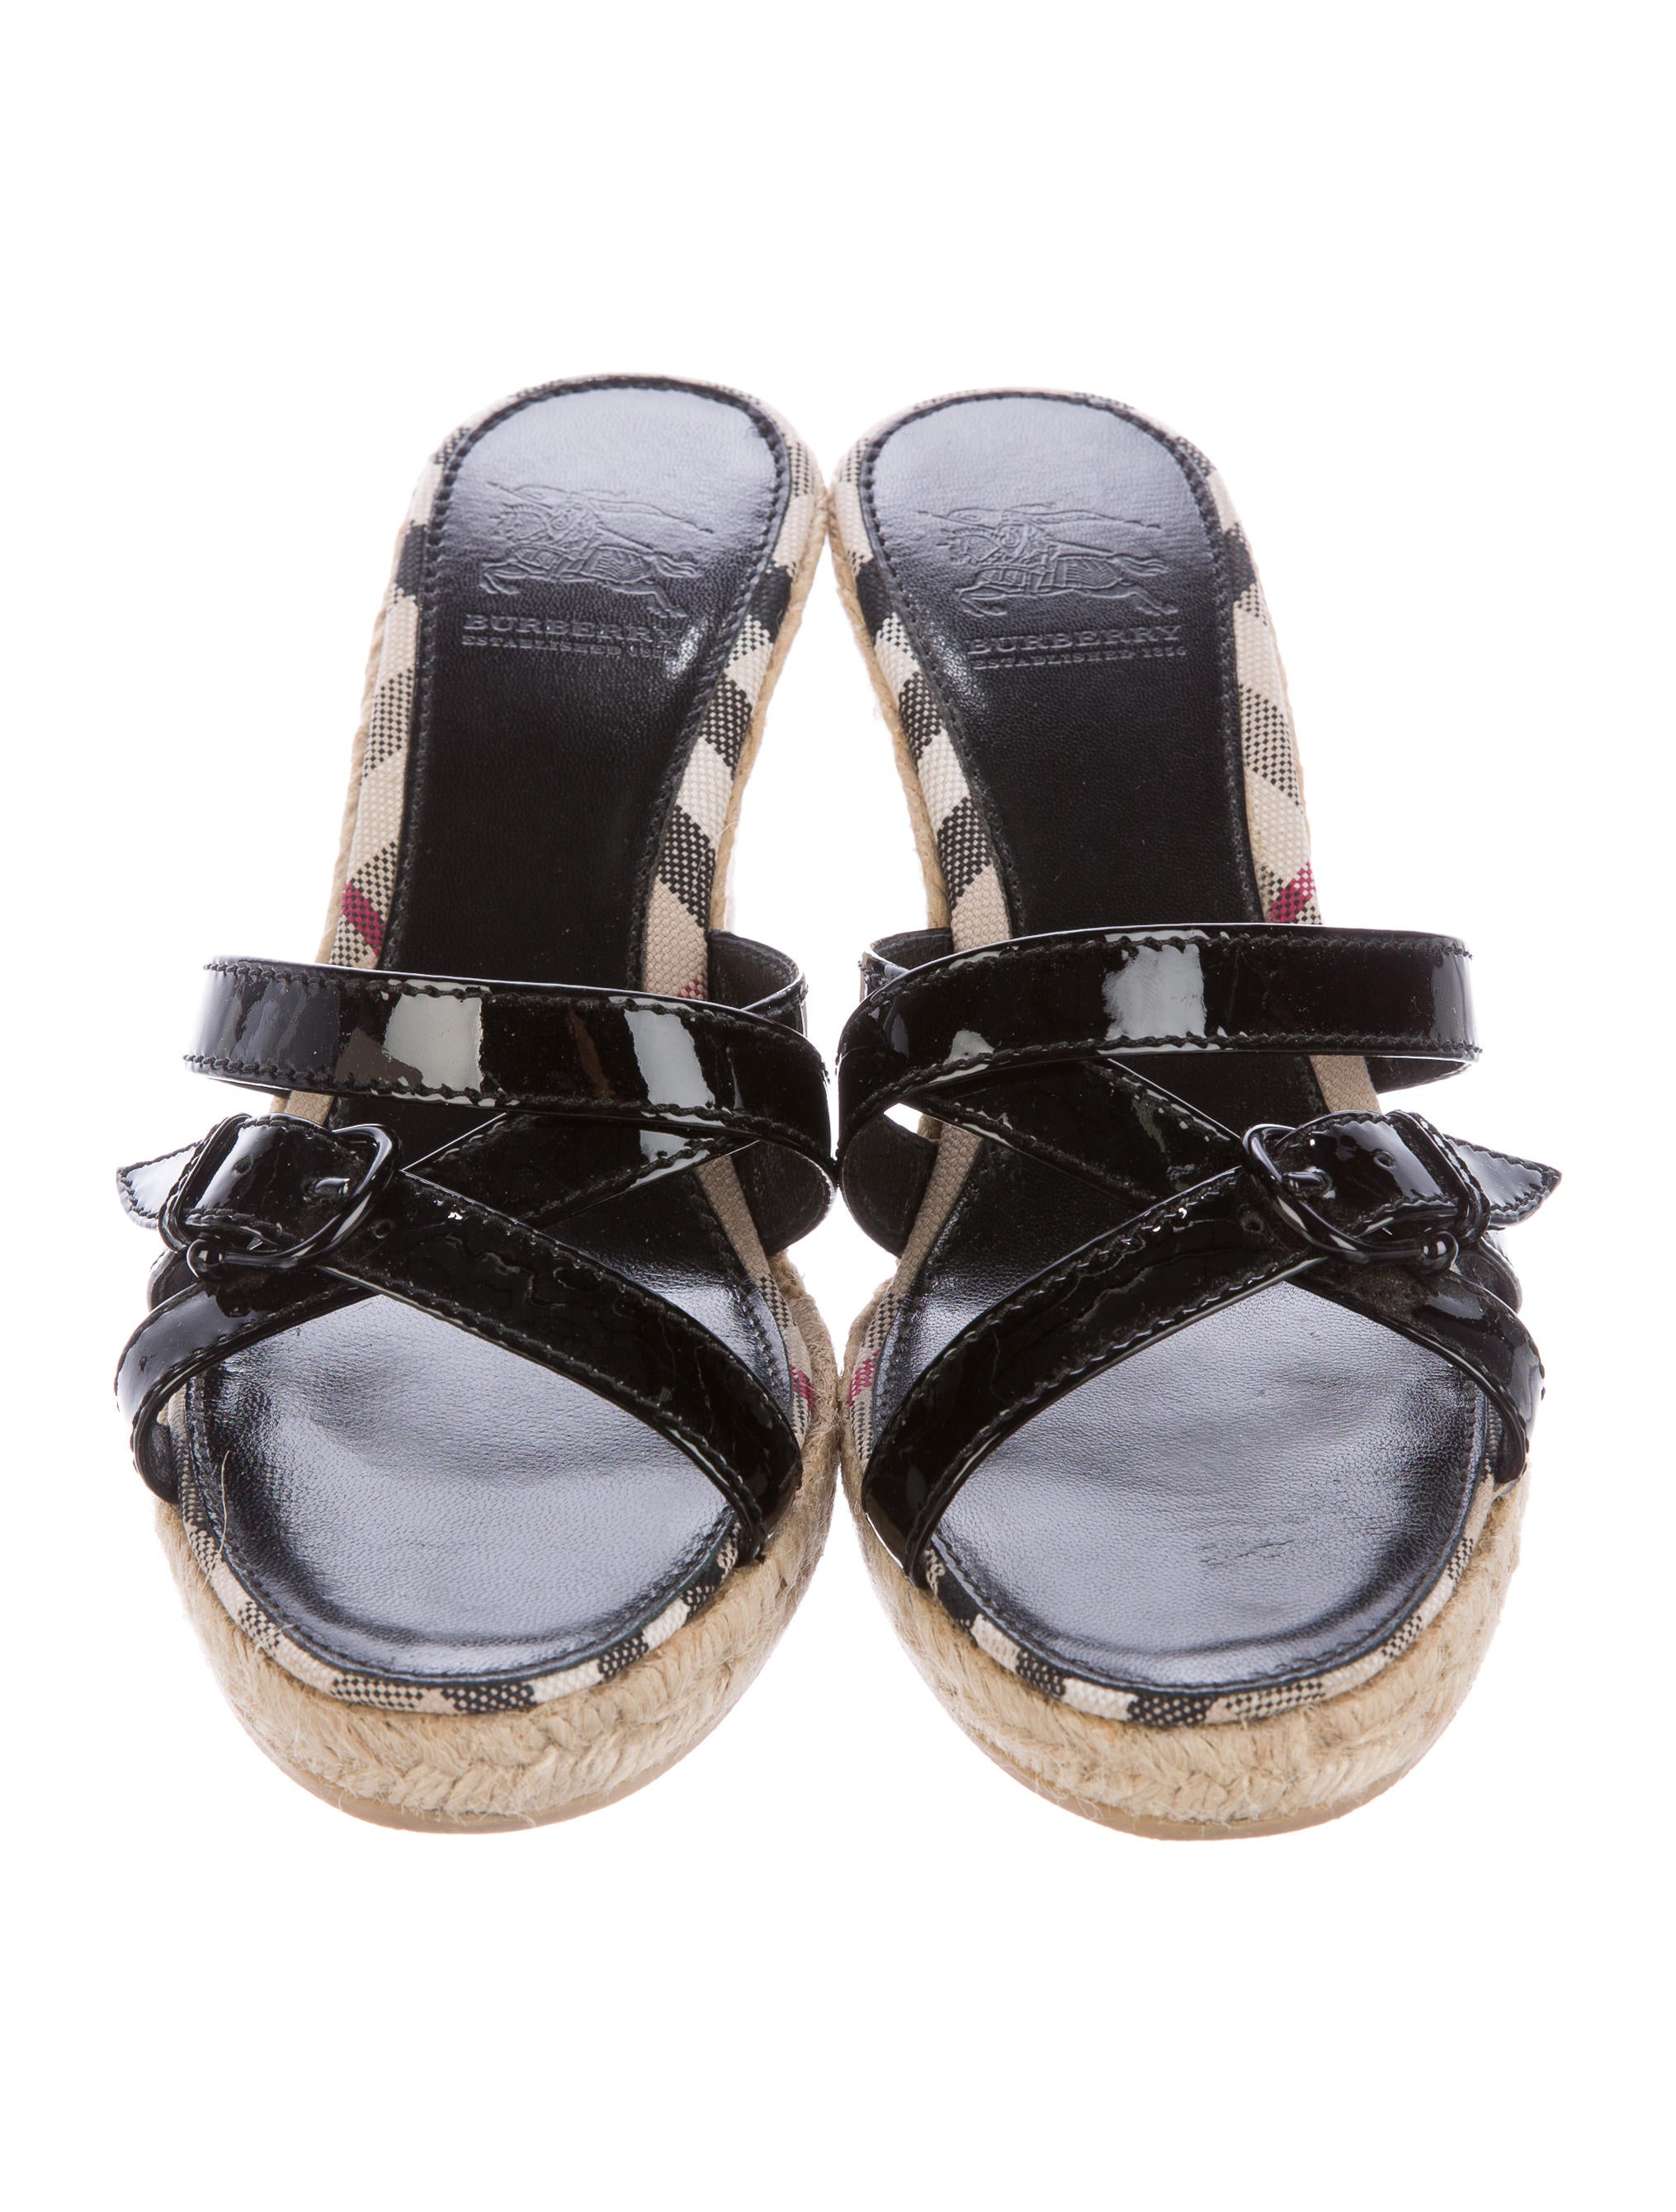 burberry espadrille wedge sandals shoes bur68375 the